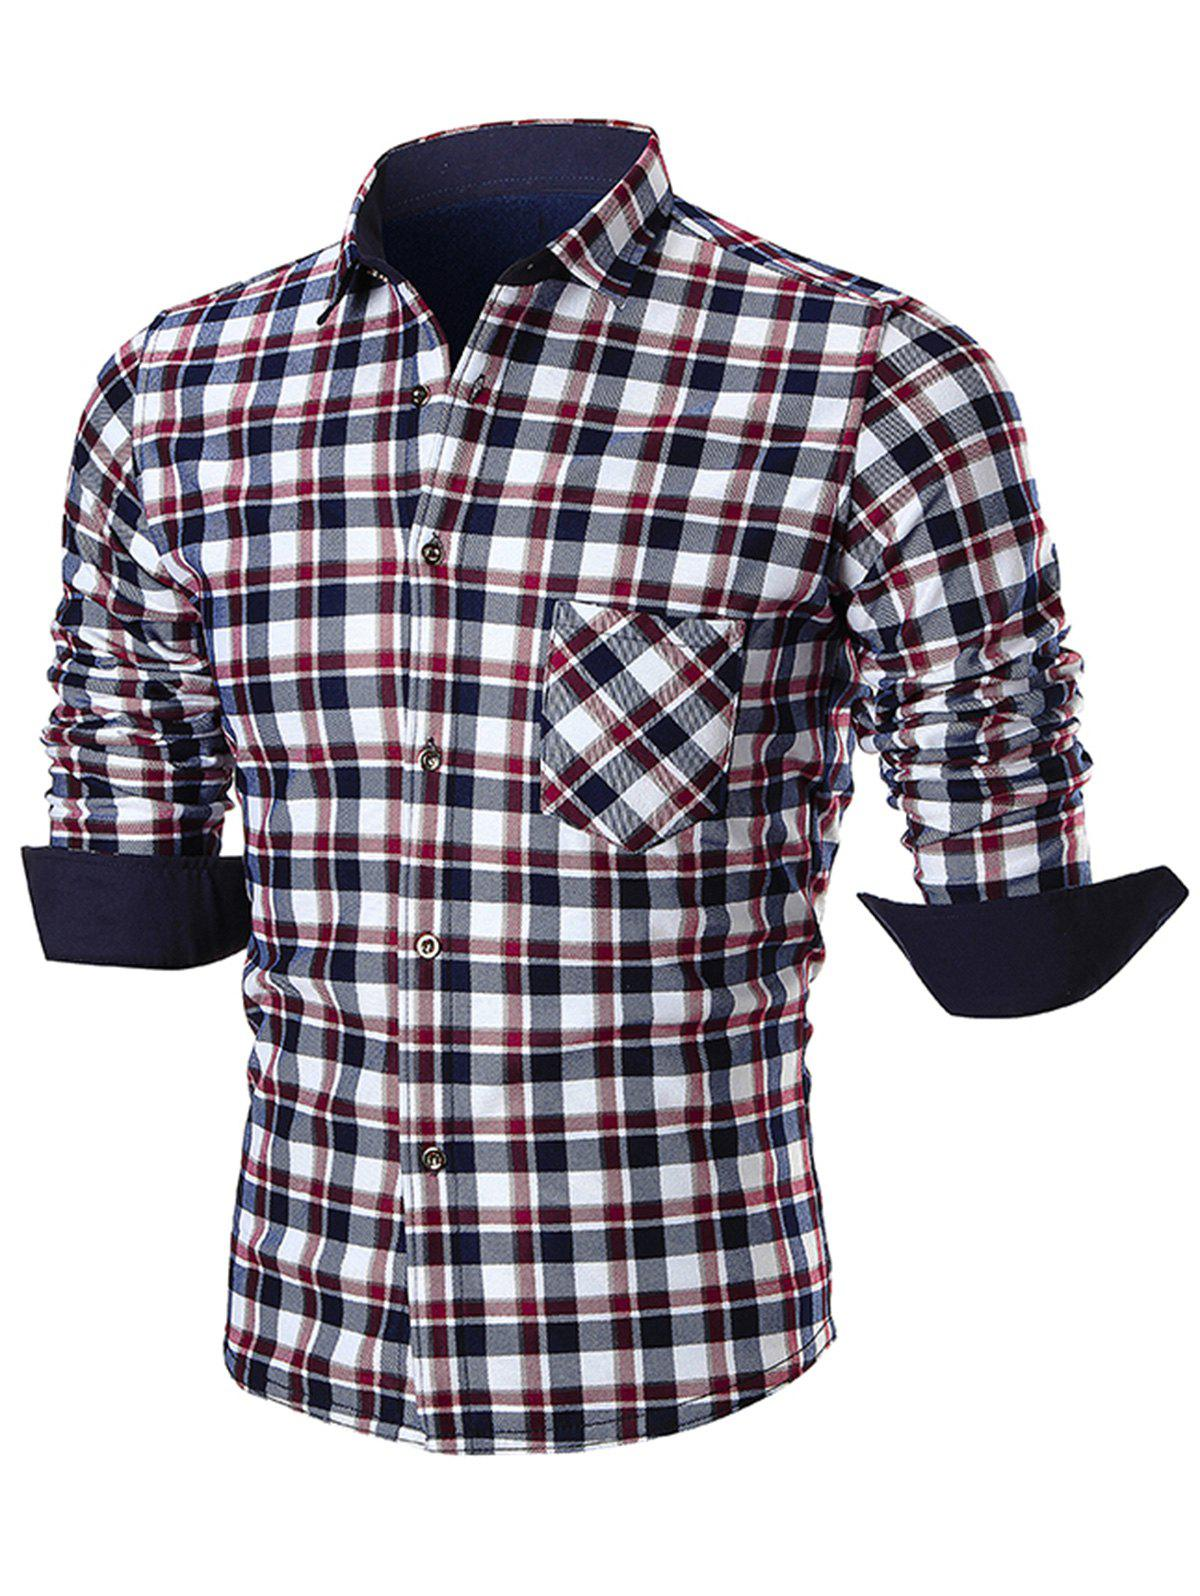 Turn Down Collar Pocket Plaid Shirt - RED 4XL